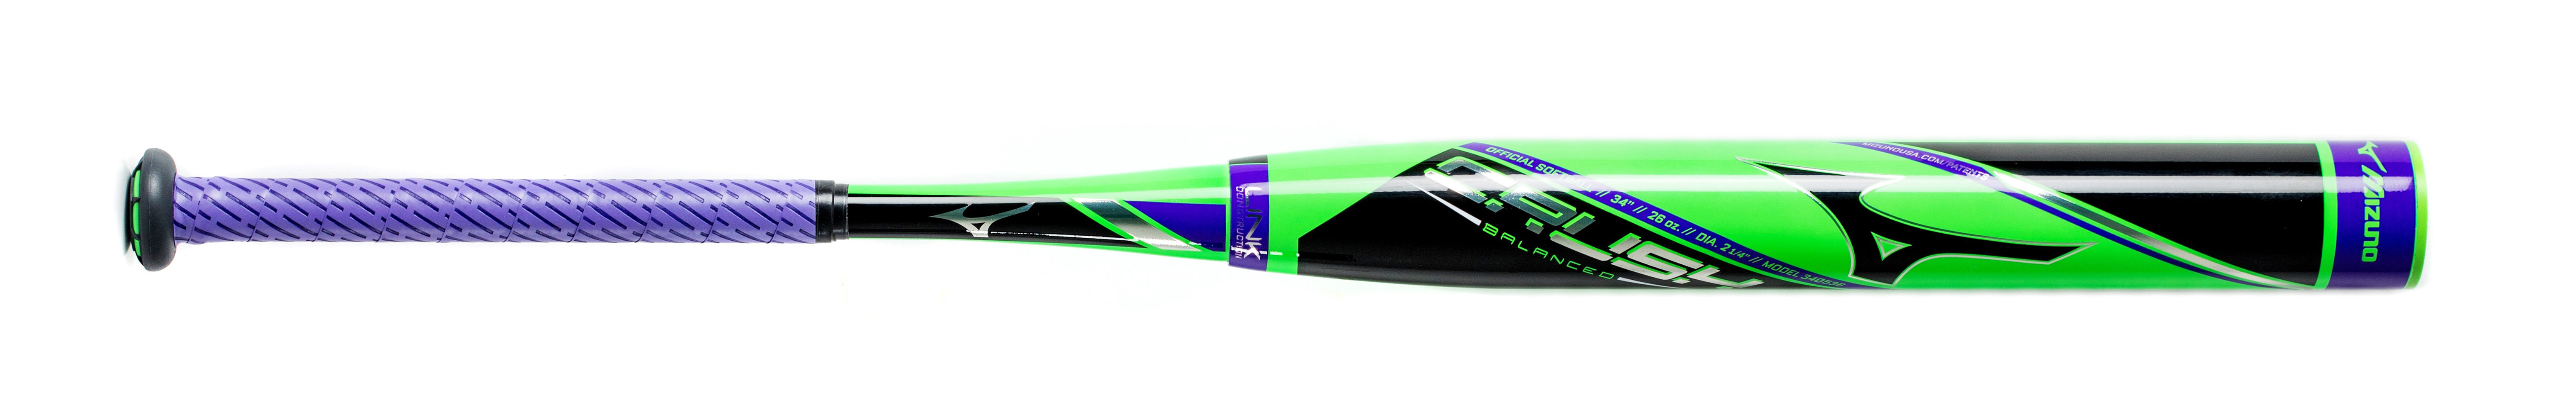 2019 Mizuno Crush 13 Balanced USSSA Slo-Pitch Bat